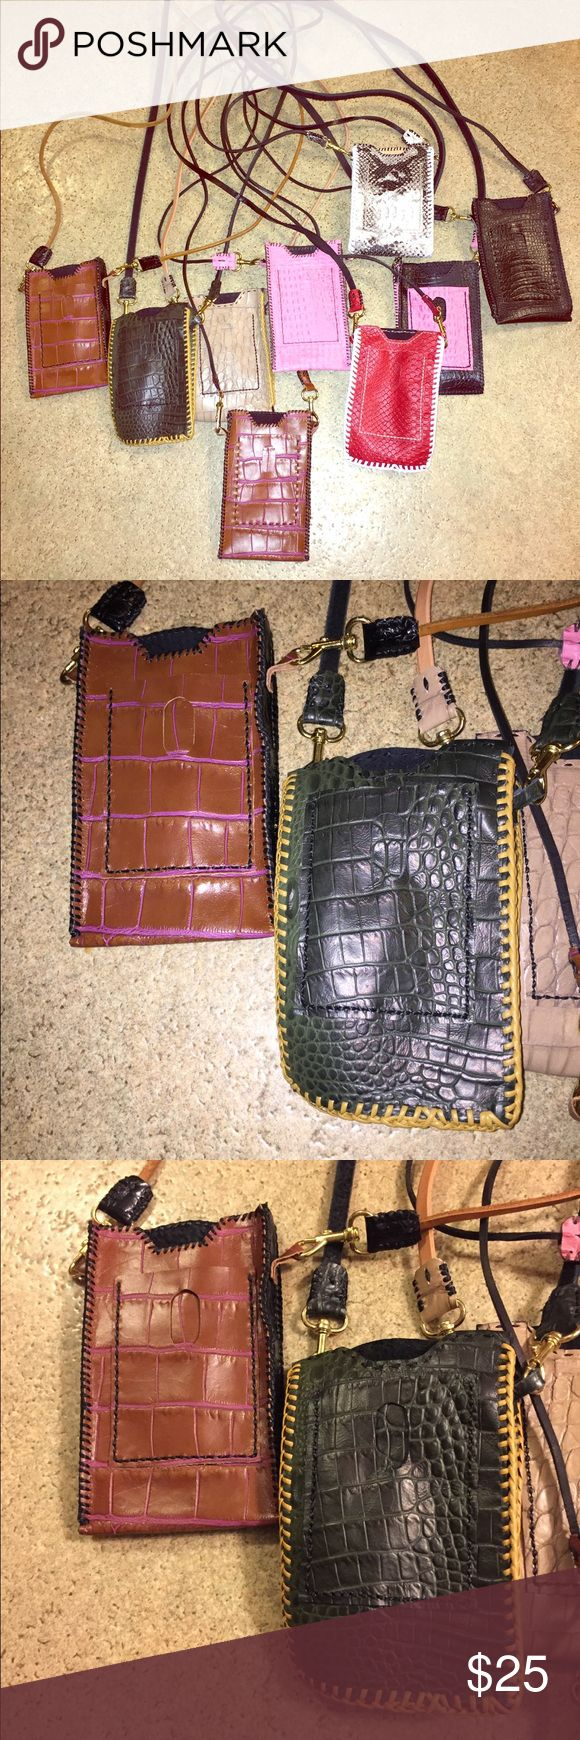 Cell phone carrier Prison-made genuine leather cell phone carrier. Big enough to hold iPhone 6 and bigger. Has front pocket for i.d., cash, credit card.   Only have in stock one of each but can order more.  Comment which one you're wanting today! Bags